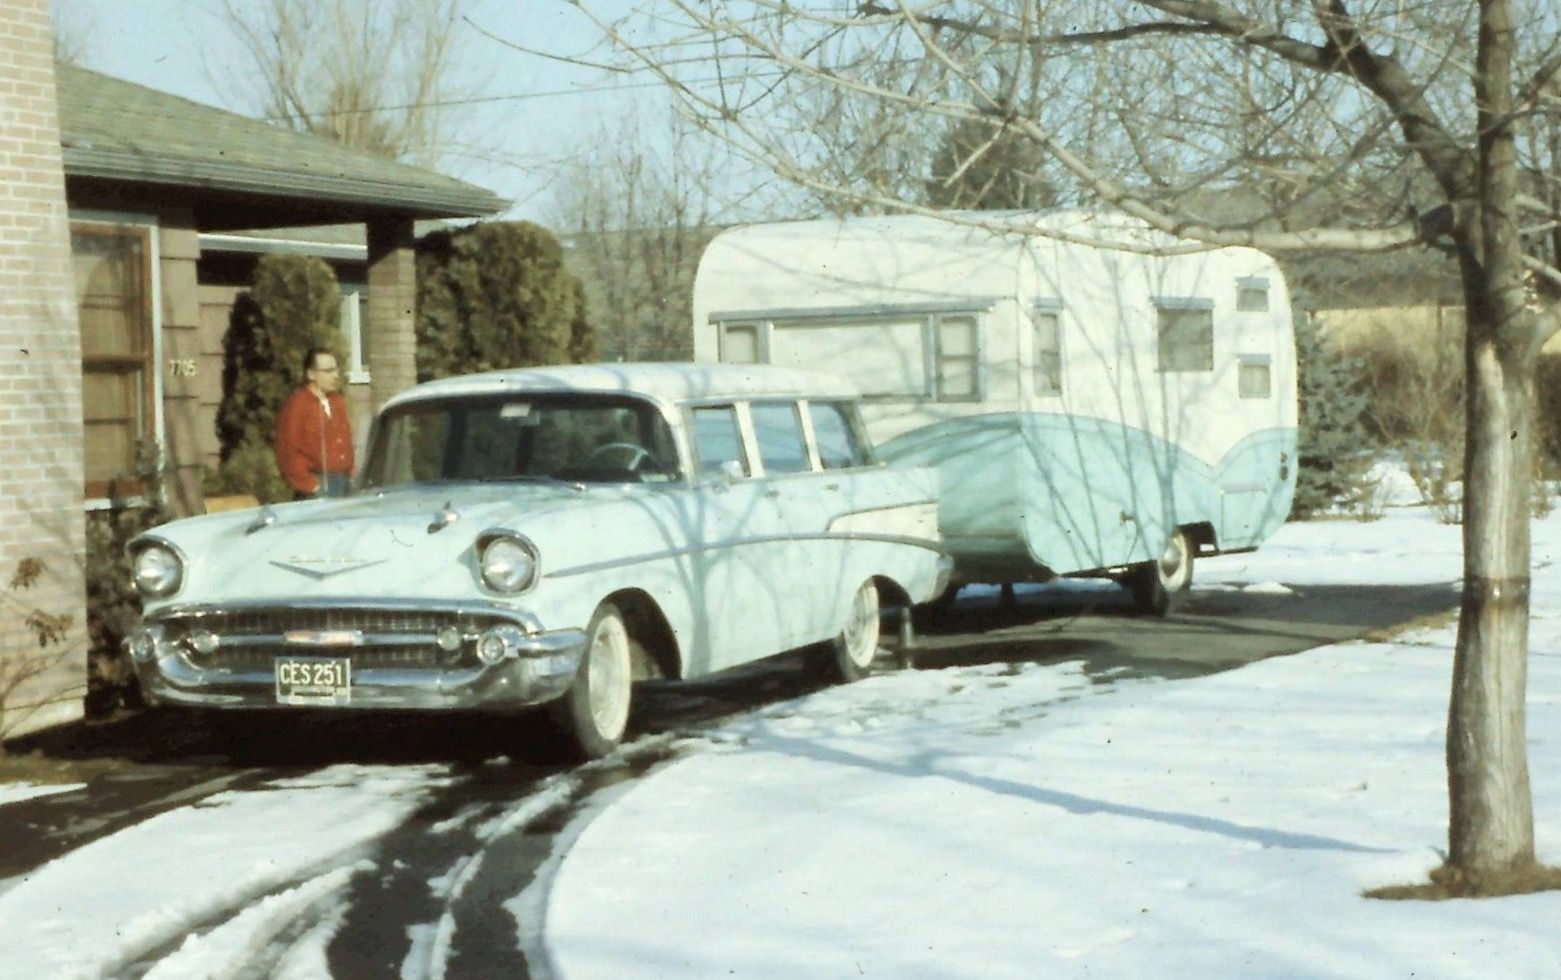 57 Chevy with matching Sante Fe. Circa 1961